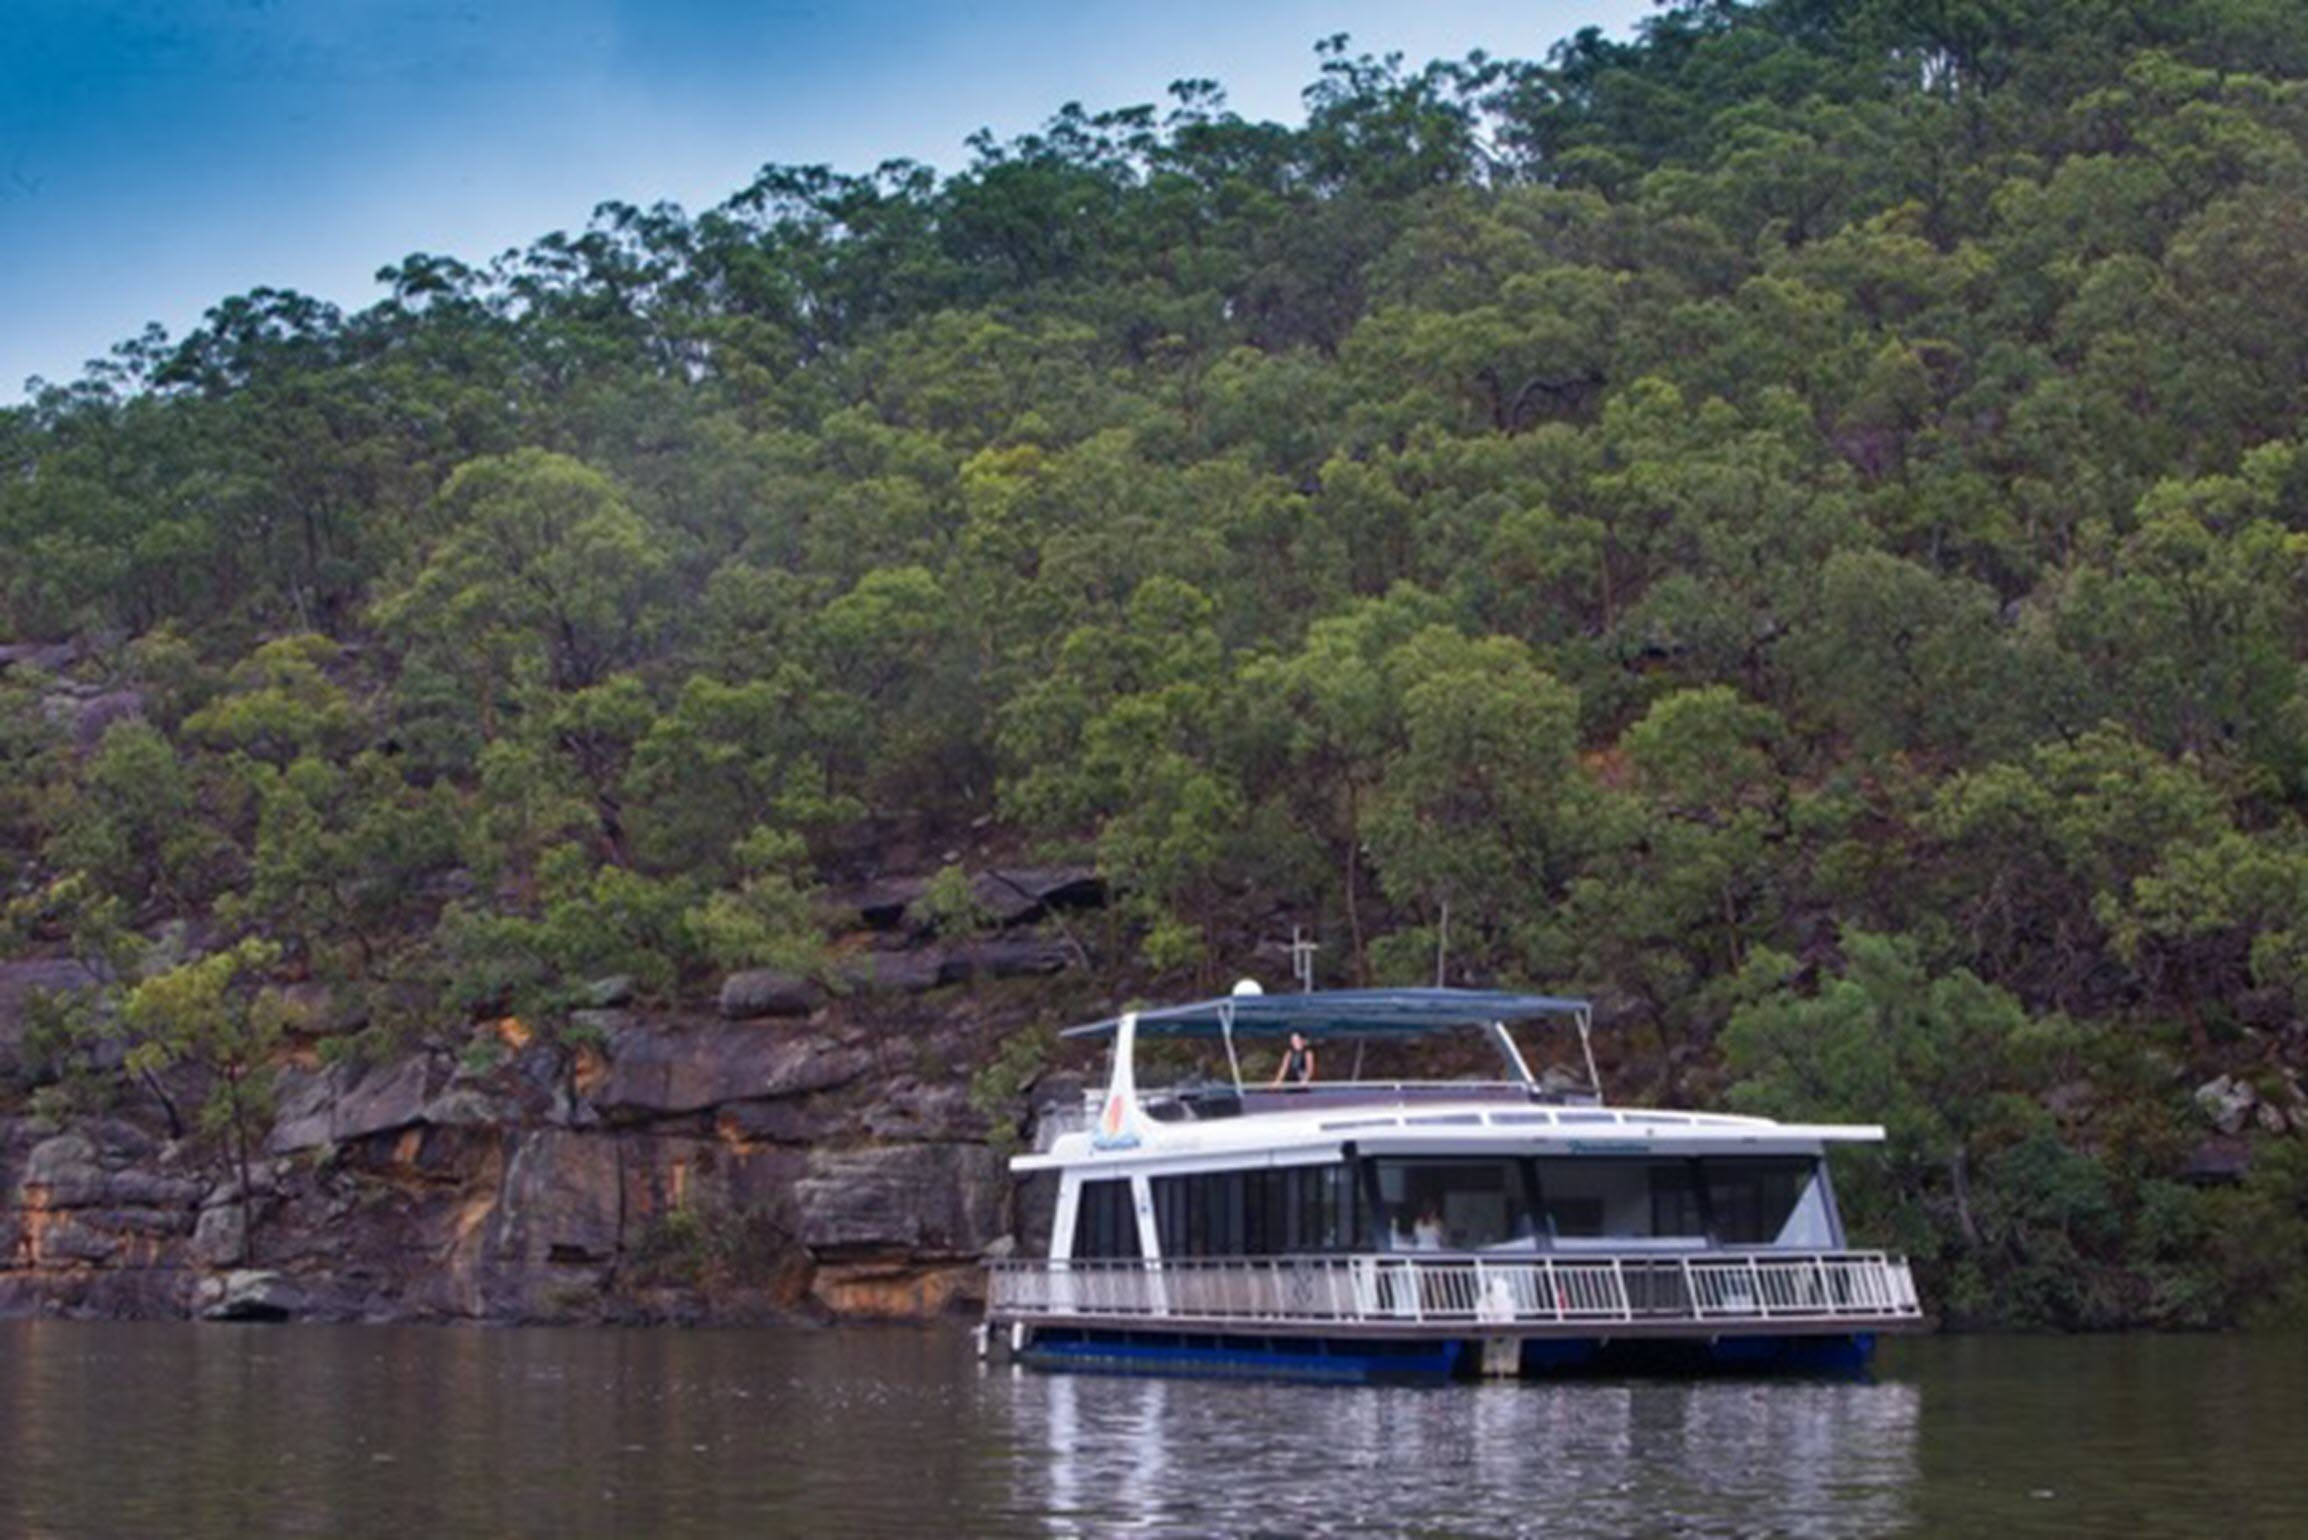 Able Hawkesbury River Houseboats - Kayaks and Dayboats - Accommodation Port Macquarie